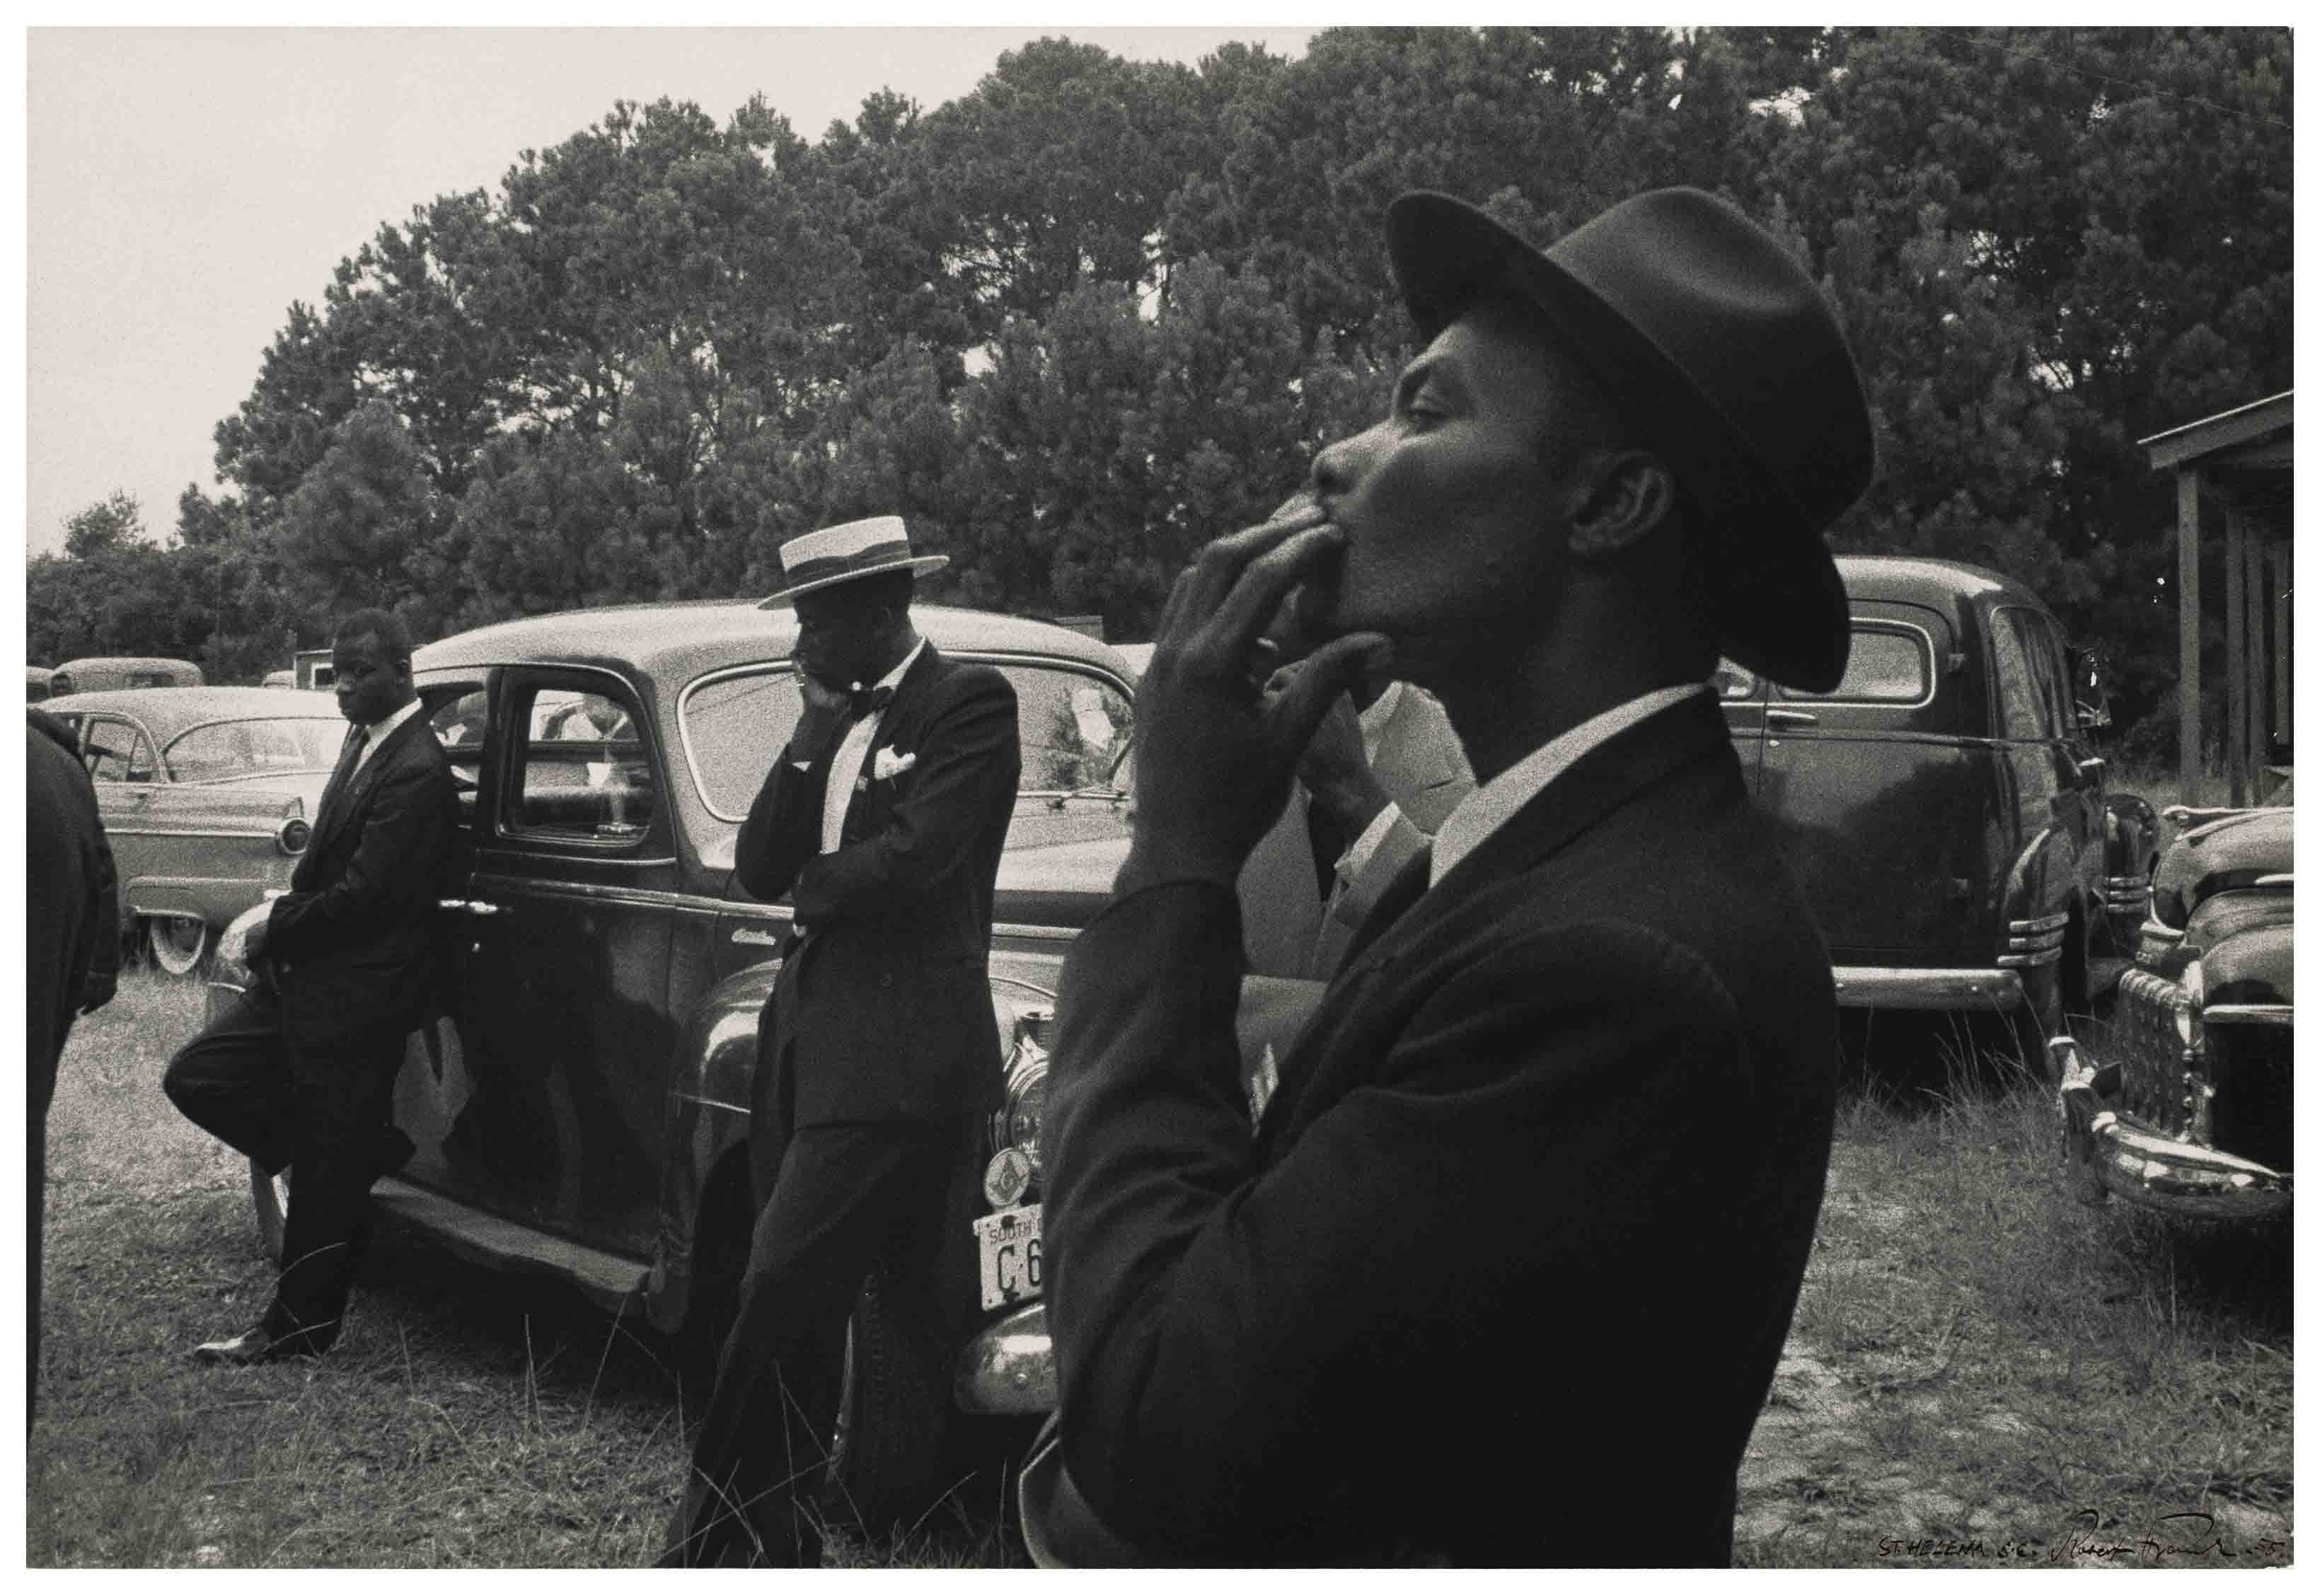 """Funeral. St. Helena, South Carolina, 1955"" (""The Americans"")"